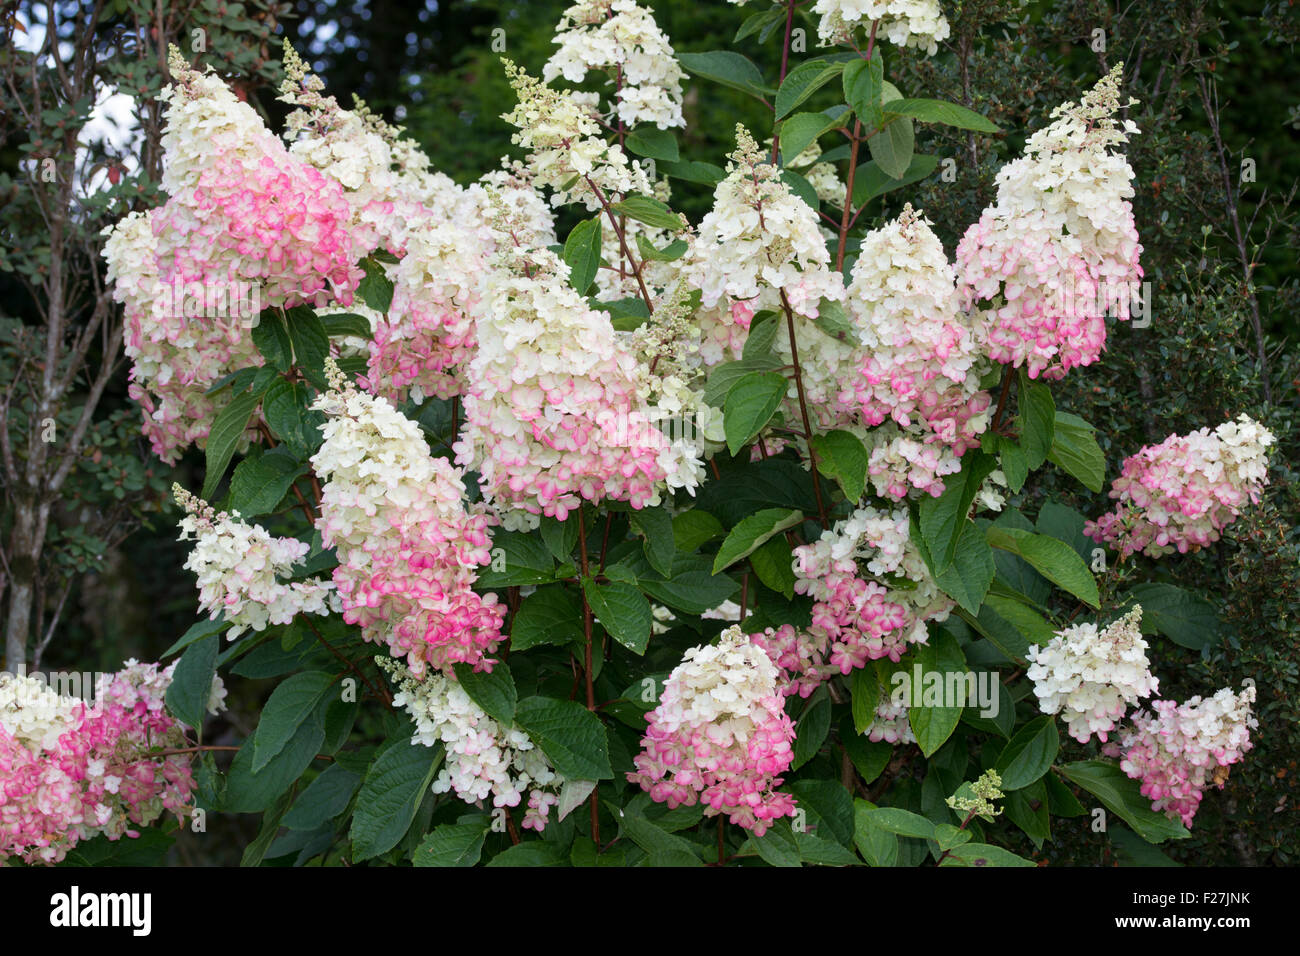 the large panicles of the deciduous hydrangea paniculata. Black Bedroom Furniture Sets. Home Design Ideas